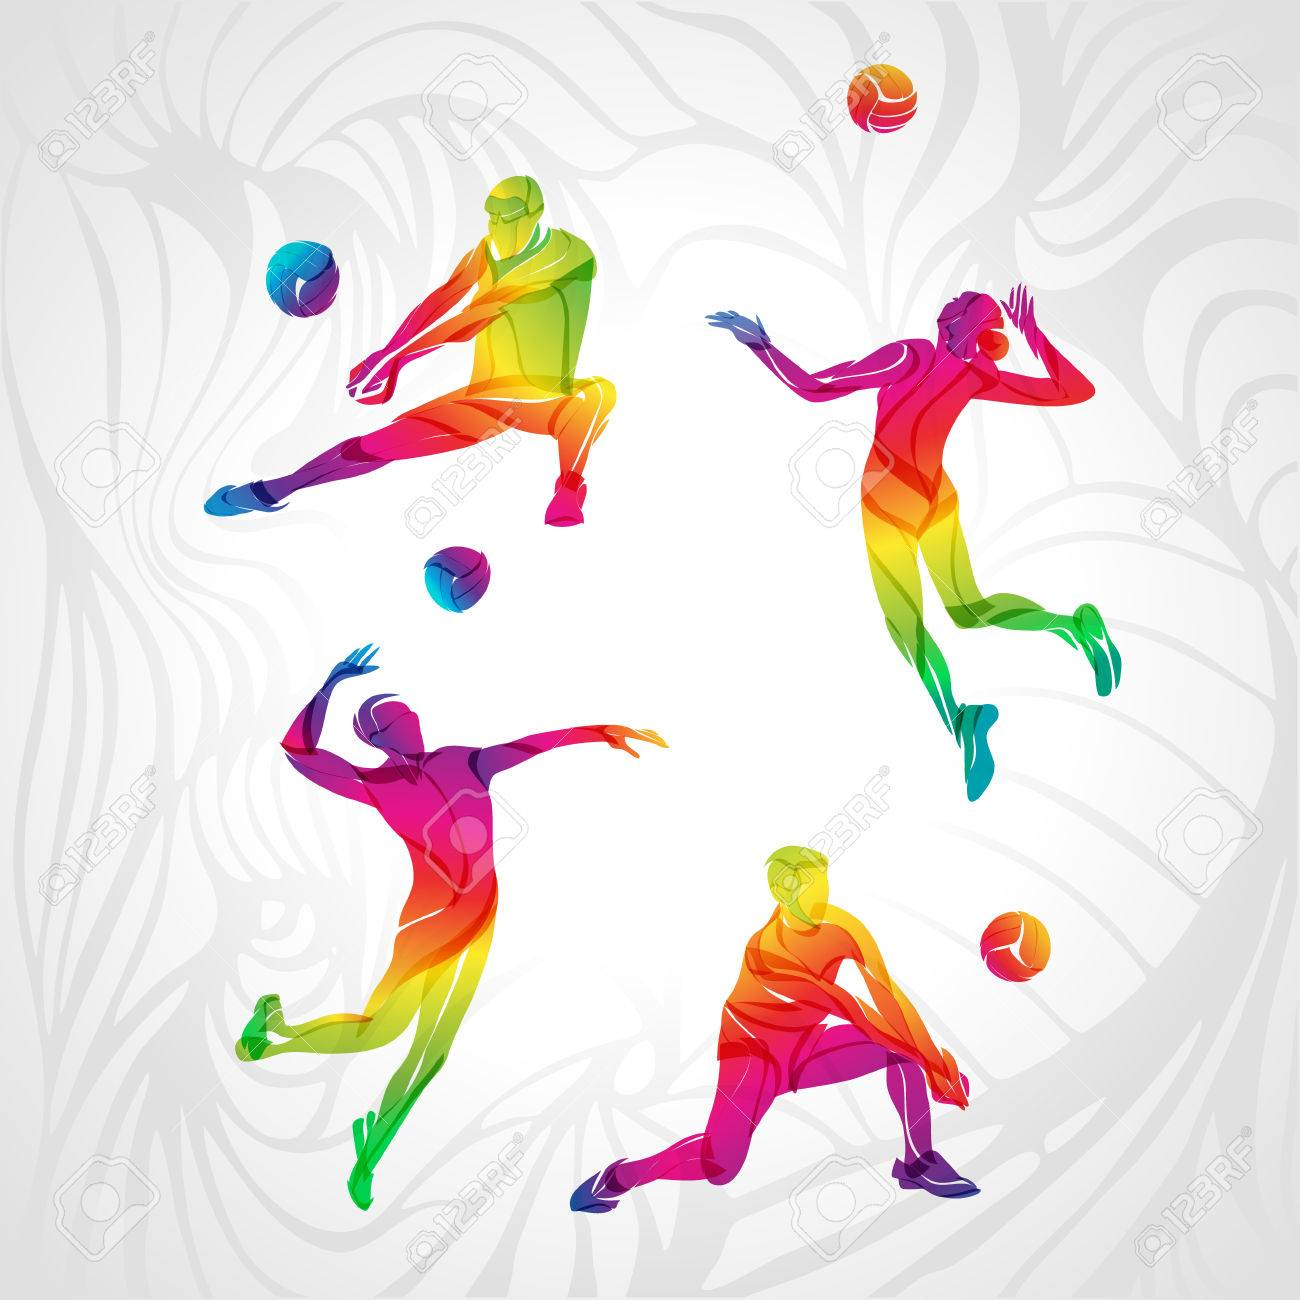 volleyball players set, people silhouettes, summer game activity. Spectrum color silhouettes collection. - 63906588